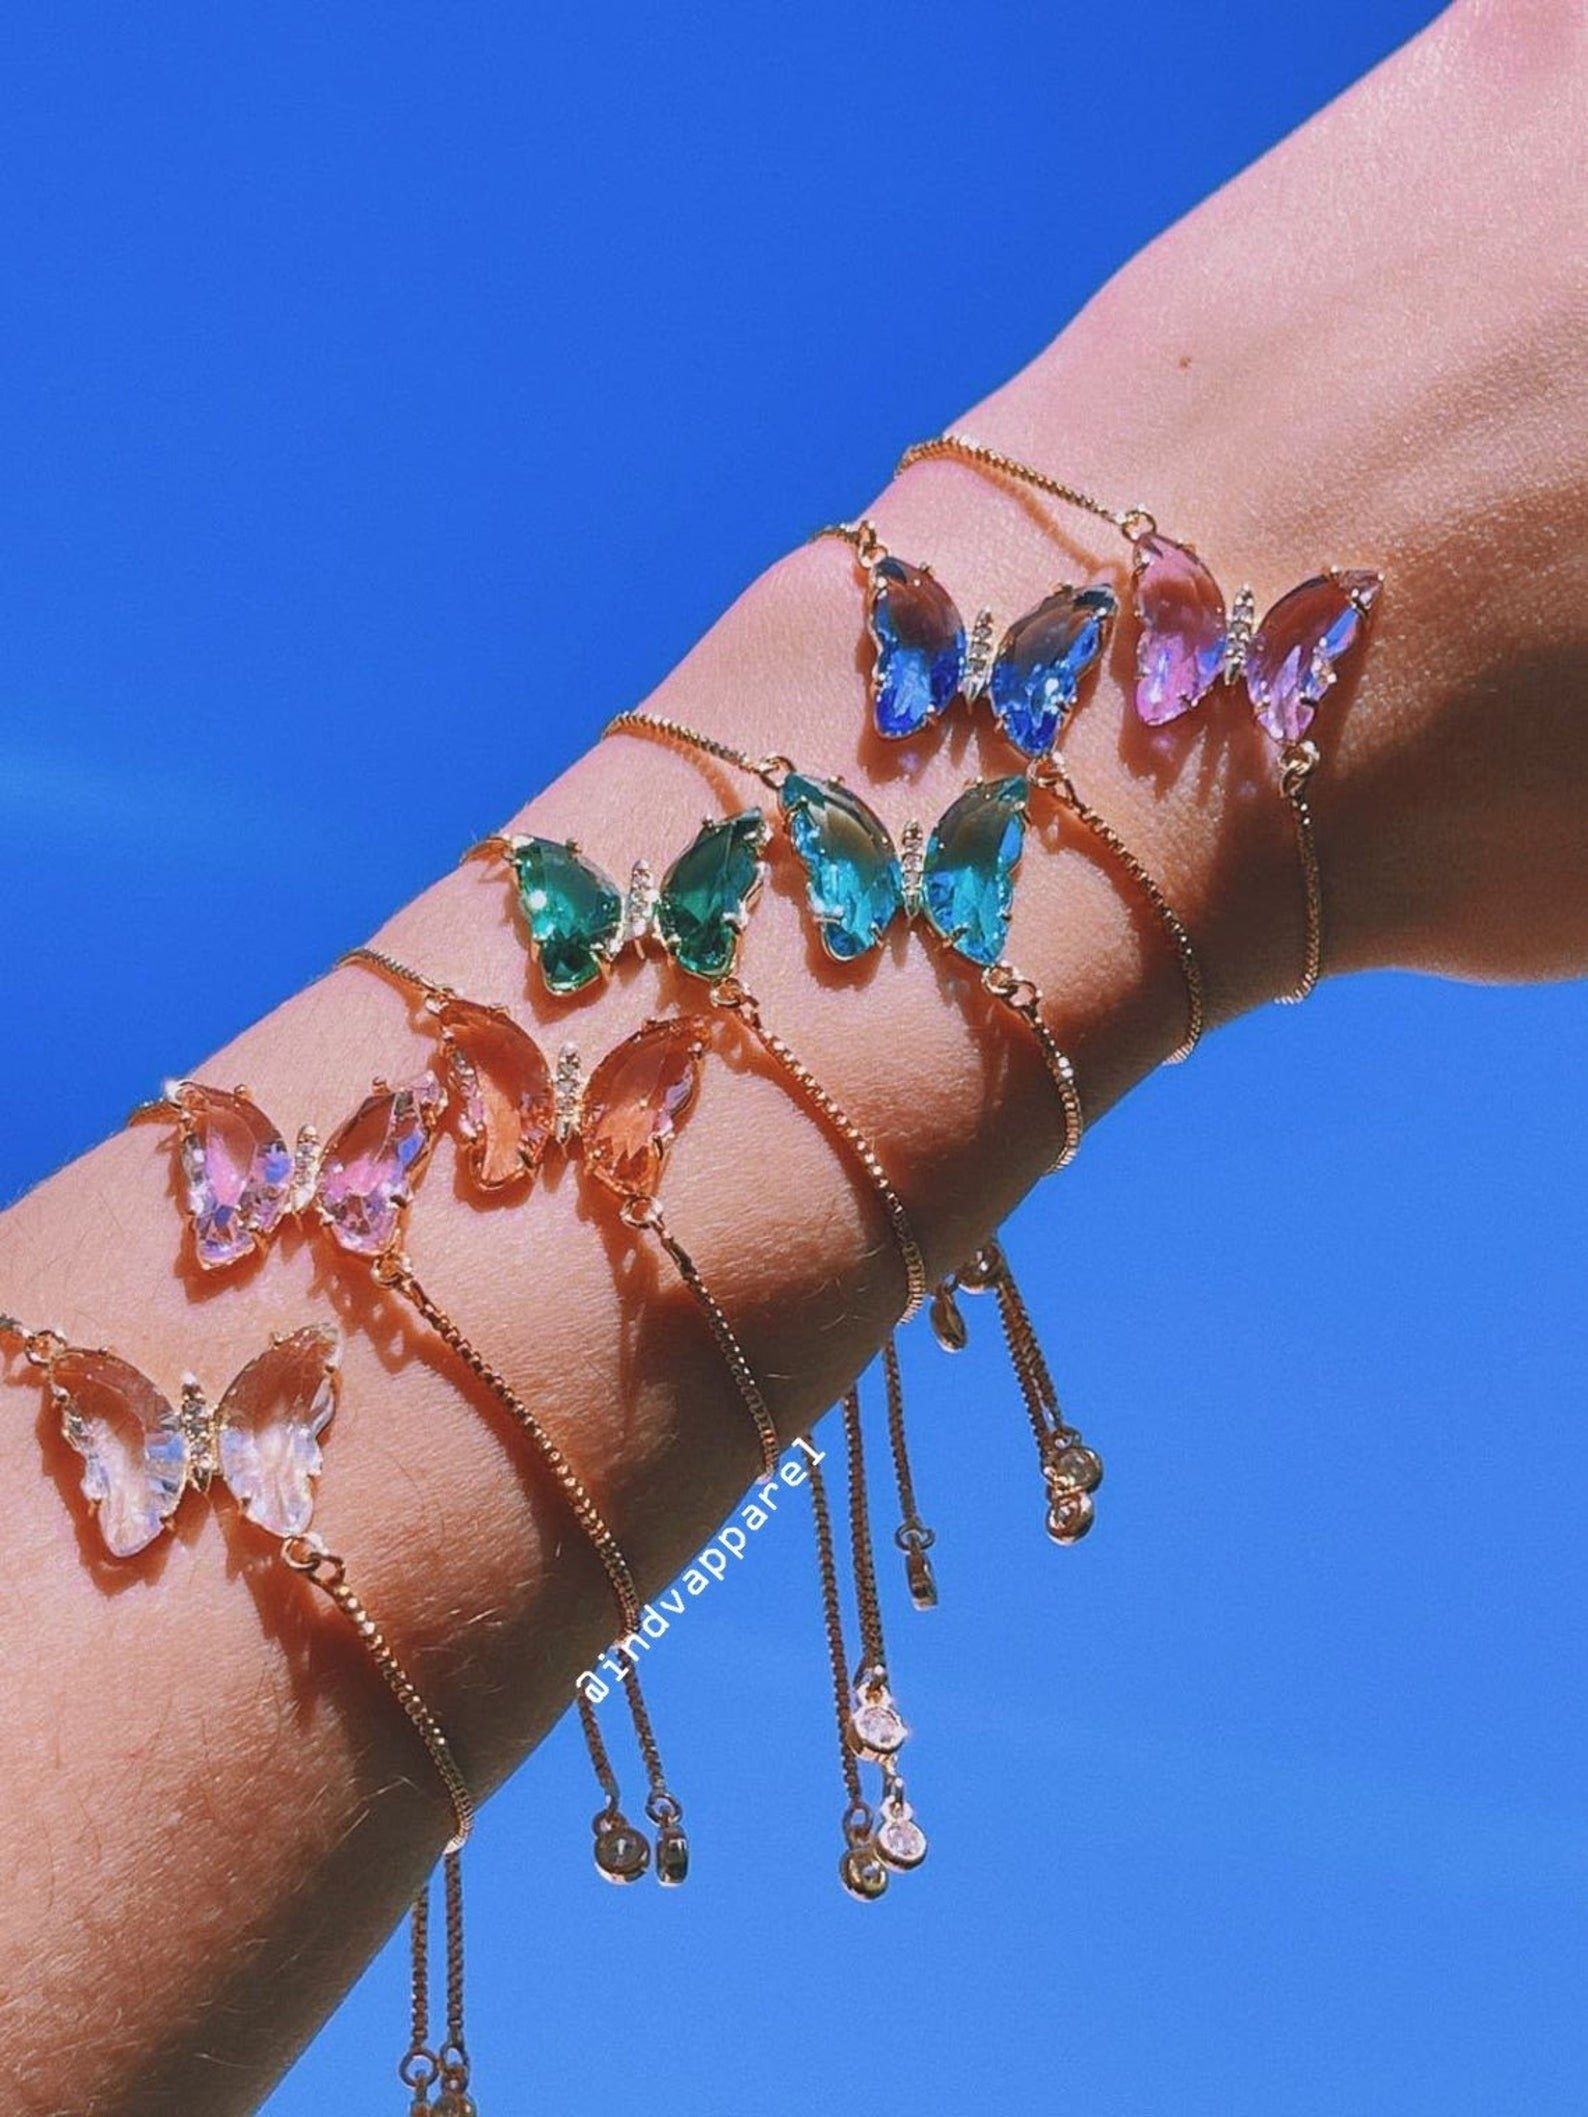 an arm with a stack of butterfly bracelets on it